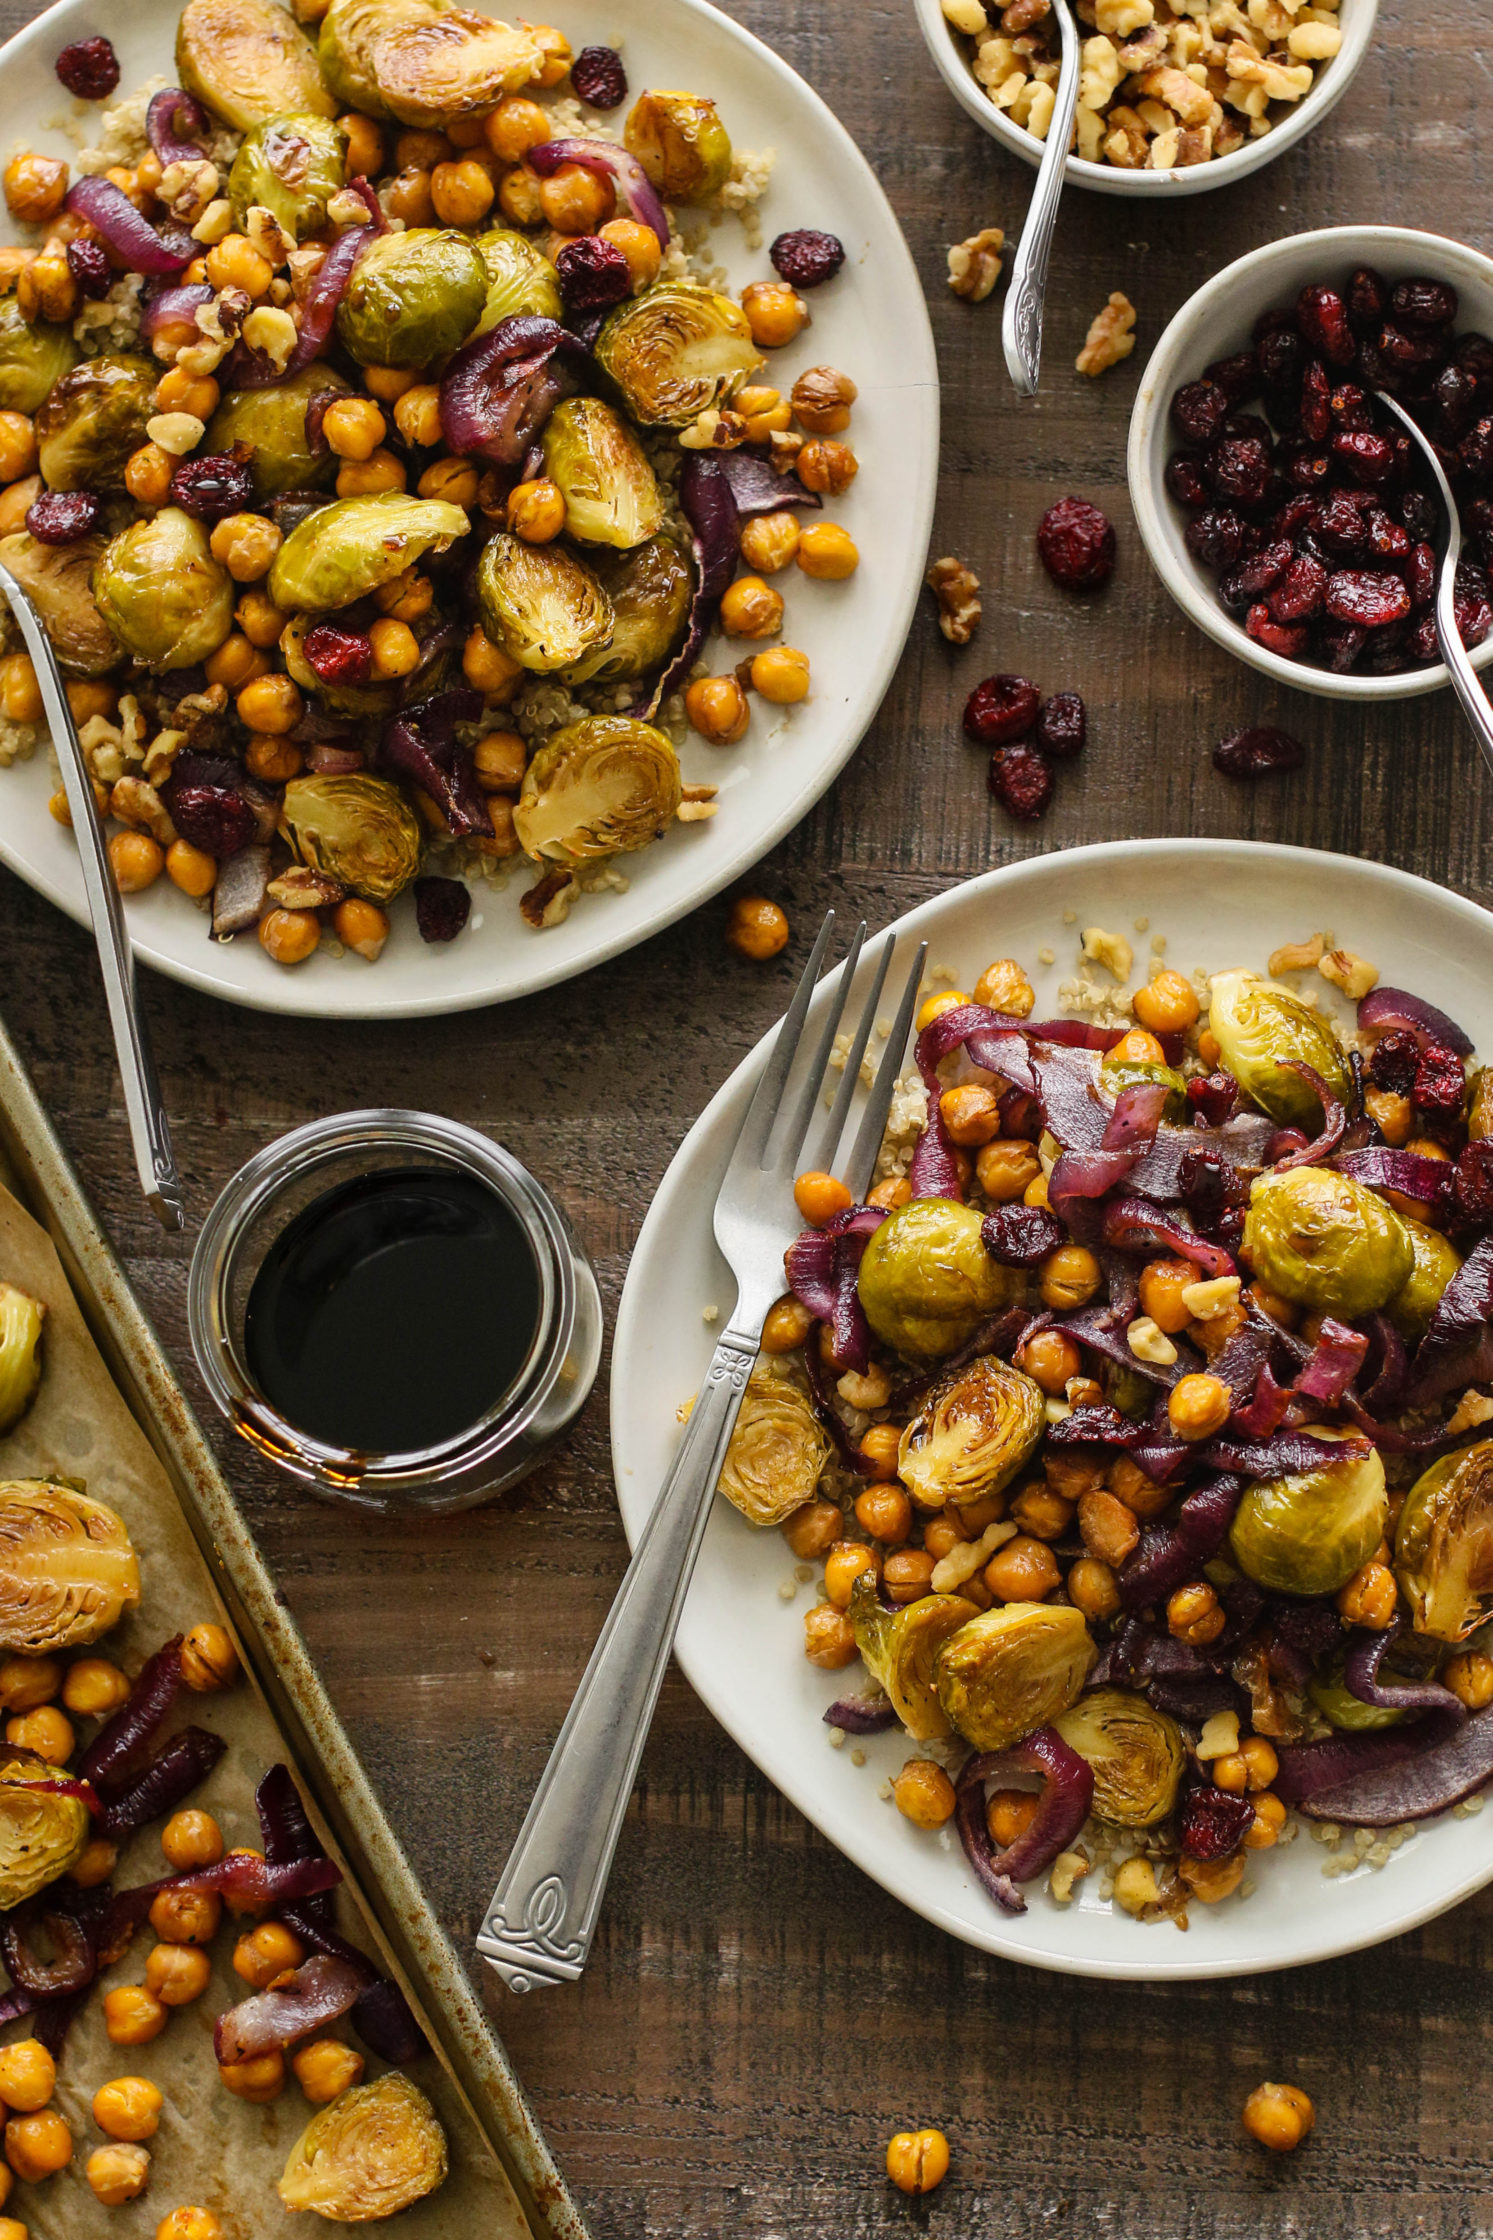 1-Pan Maple Balsamic Brussels Sprouts & Chickpeas by Flora & Vino